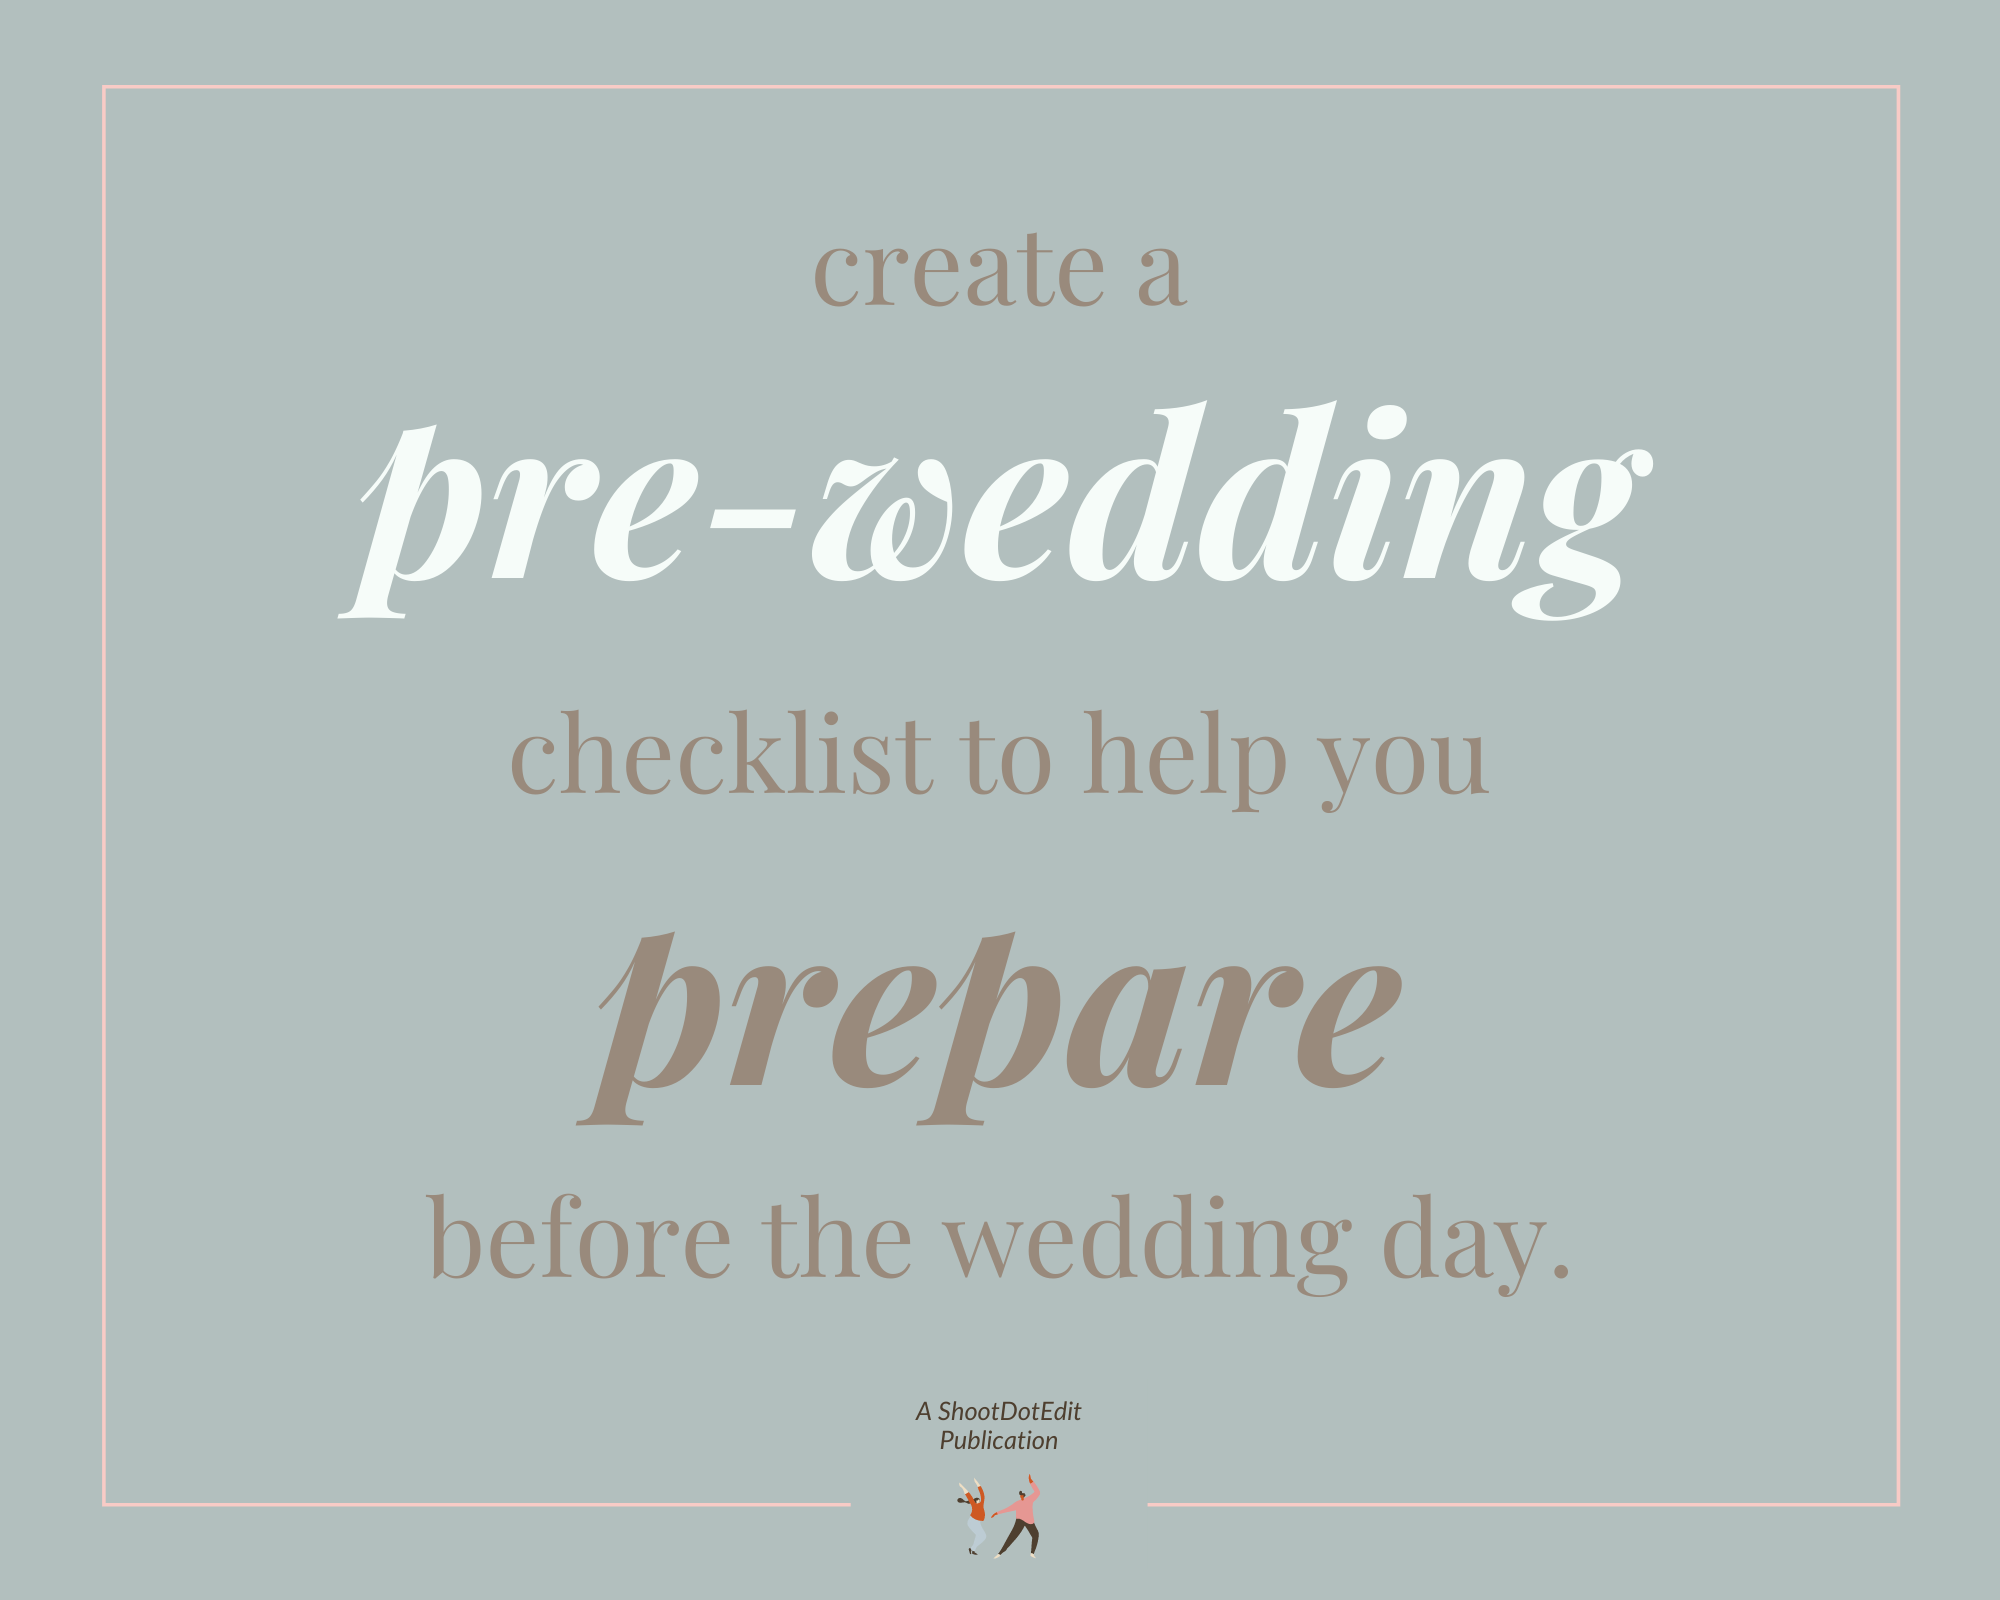 Infographic stating create a prewedding checklist to help you prepare before the wedding day